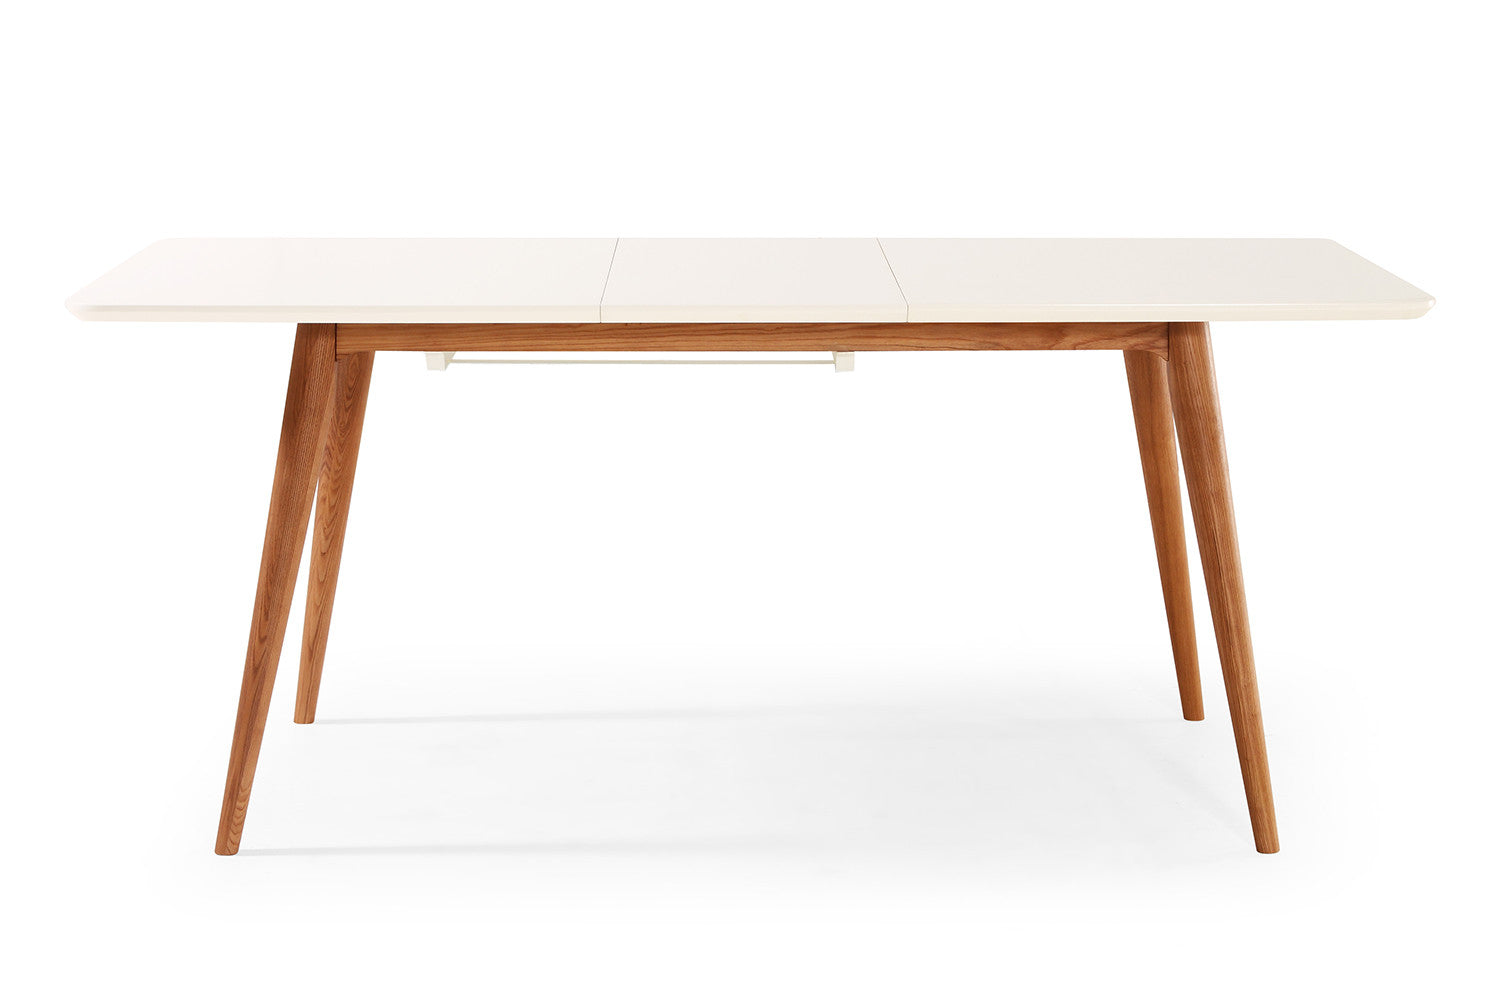 Table de salle manger extensible scandinave wyna dewarens for Table ronde extensible style scandinave